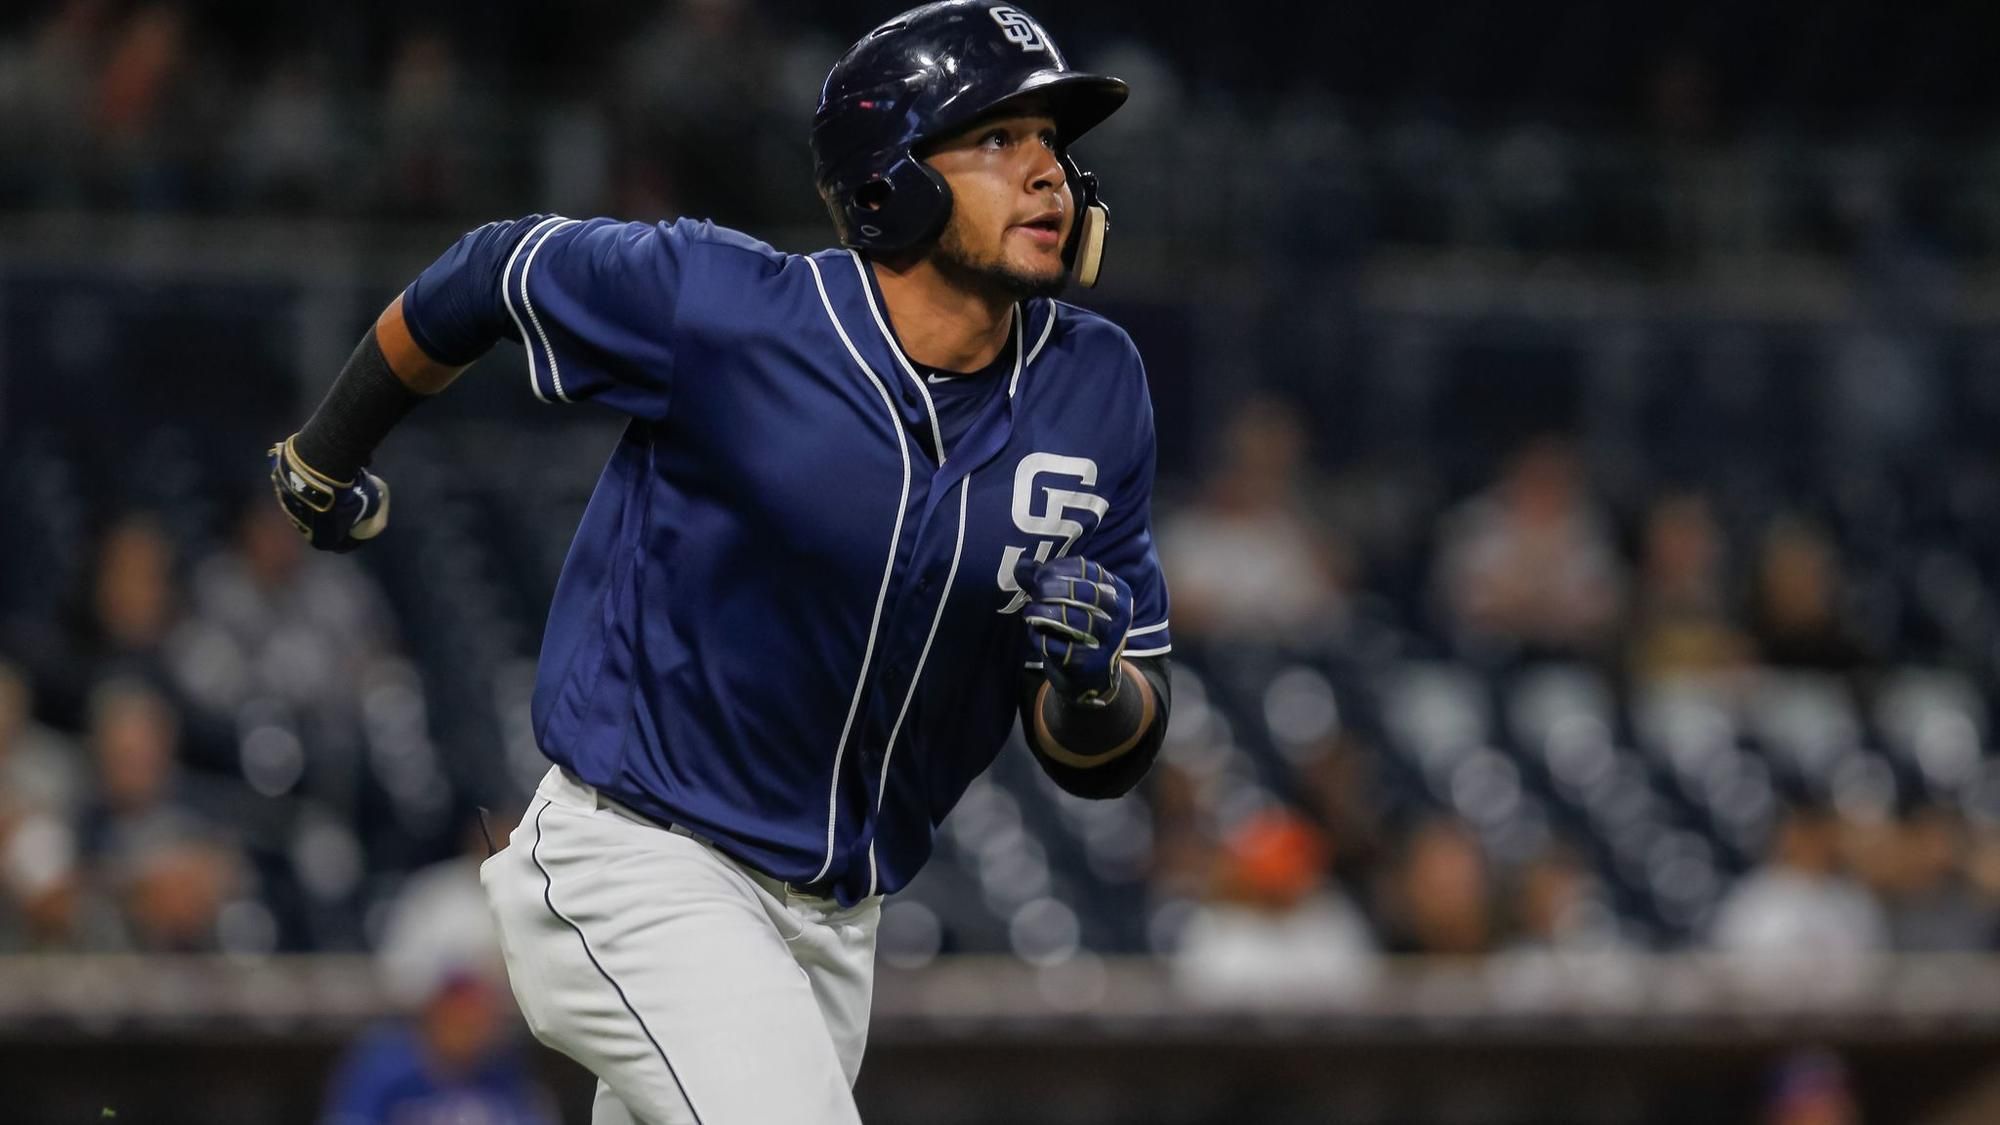 Sd-sp-tatis-quantrill-return-to-missions-20180401